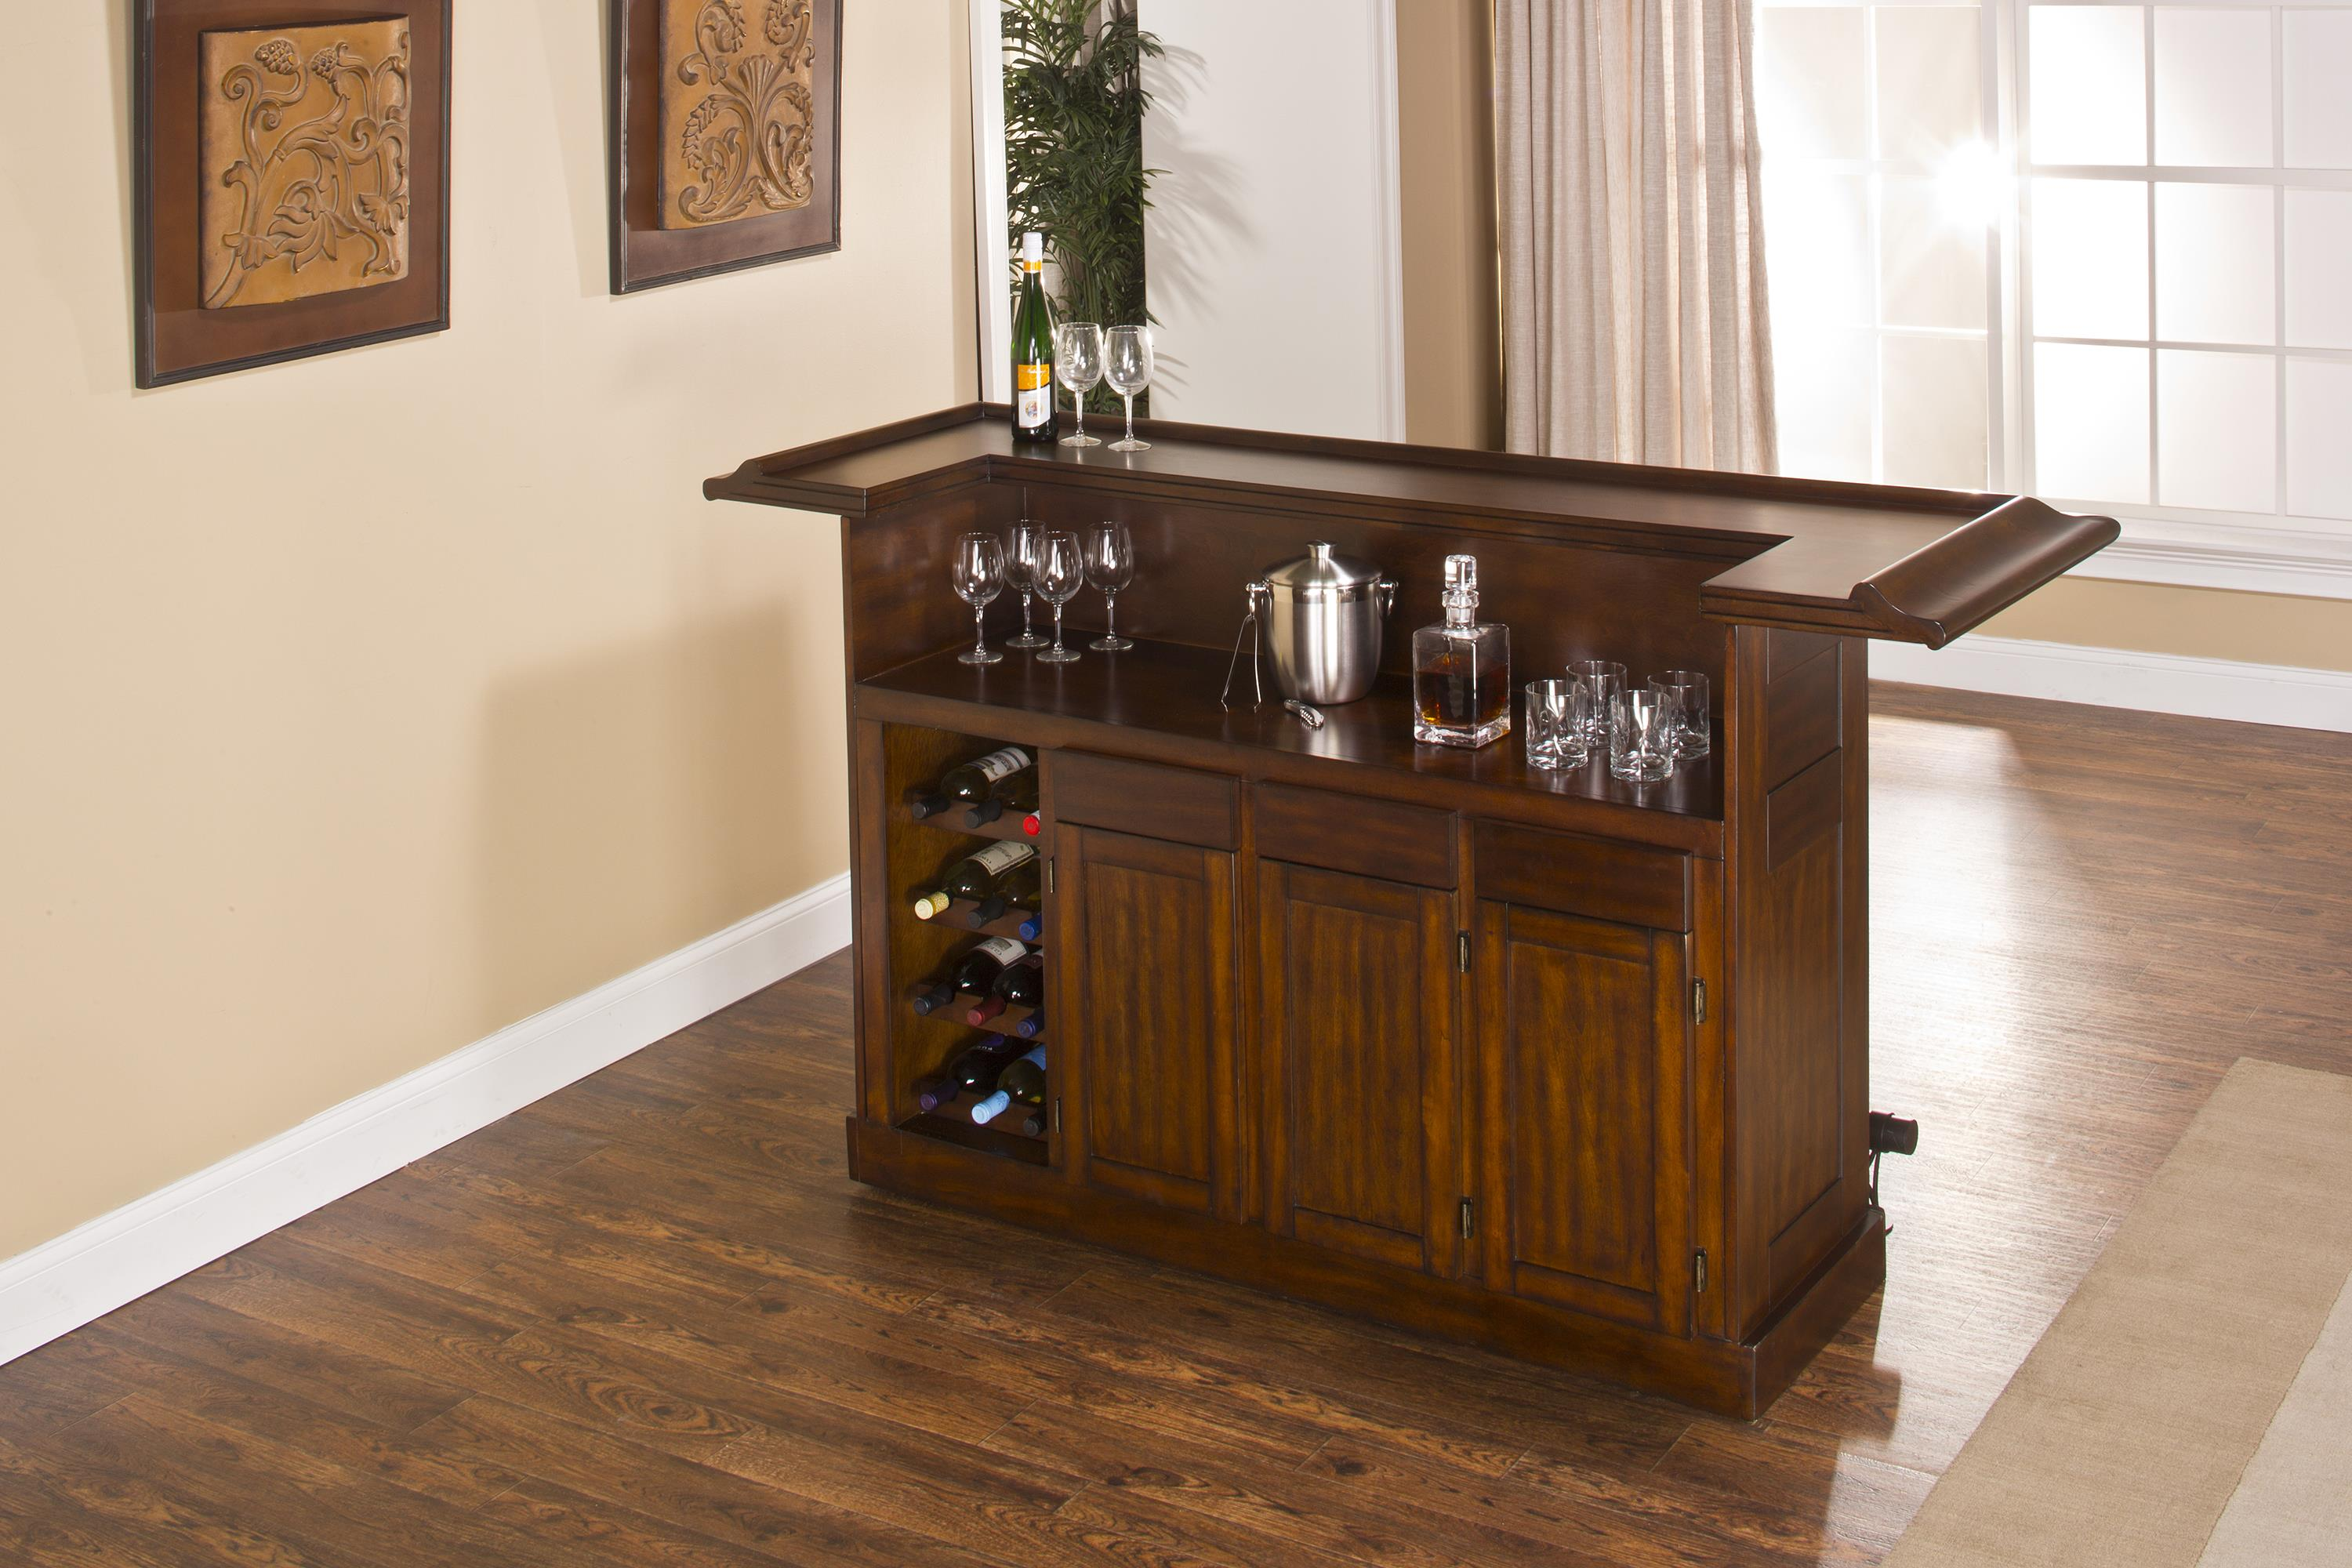 Hillsdale Classic Oak 625 Large Brown Cherry Bar - Item Number: 64028BCHE